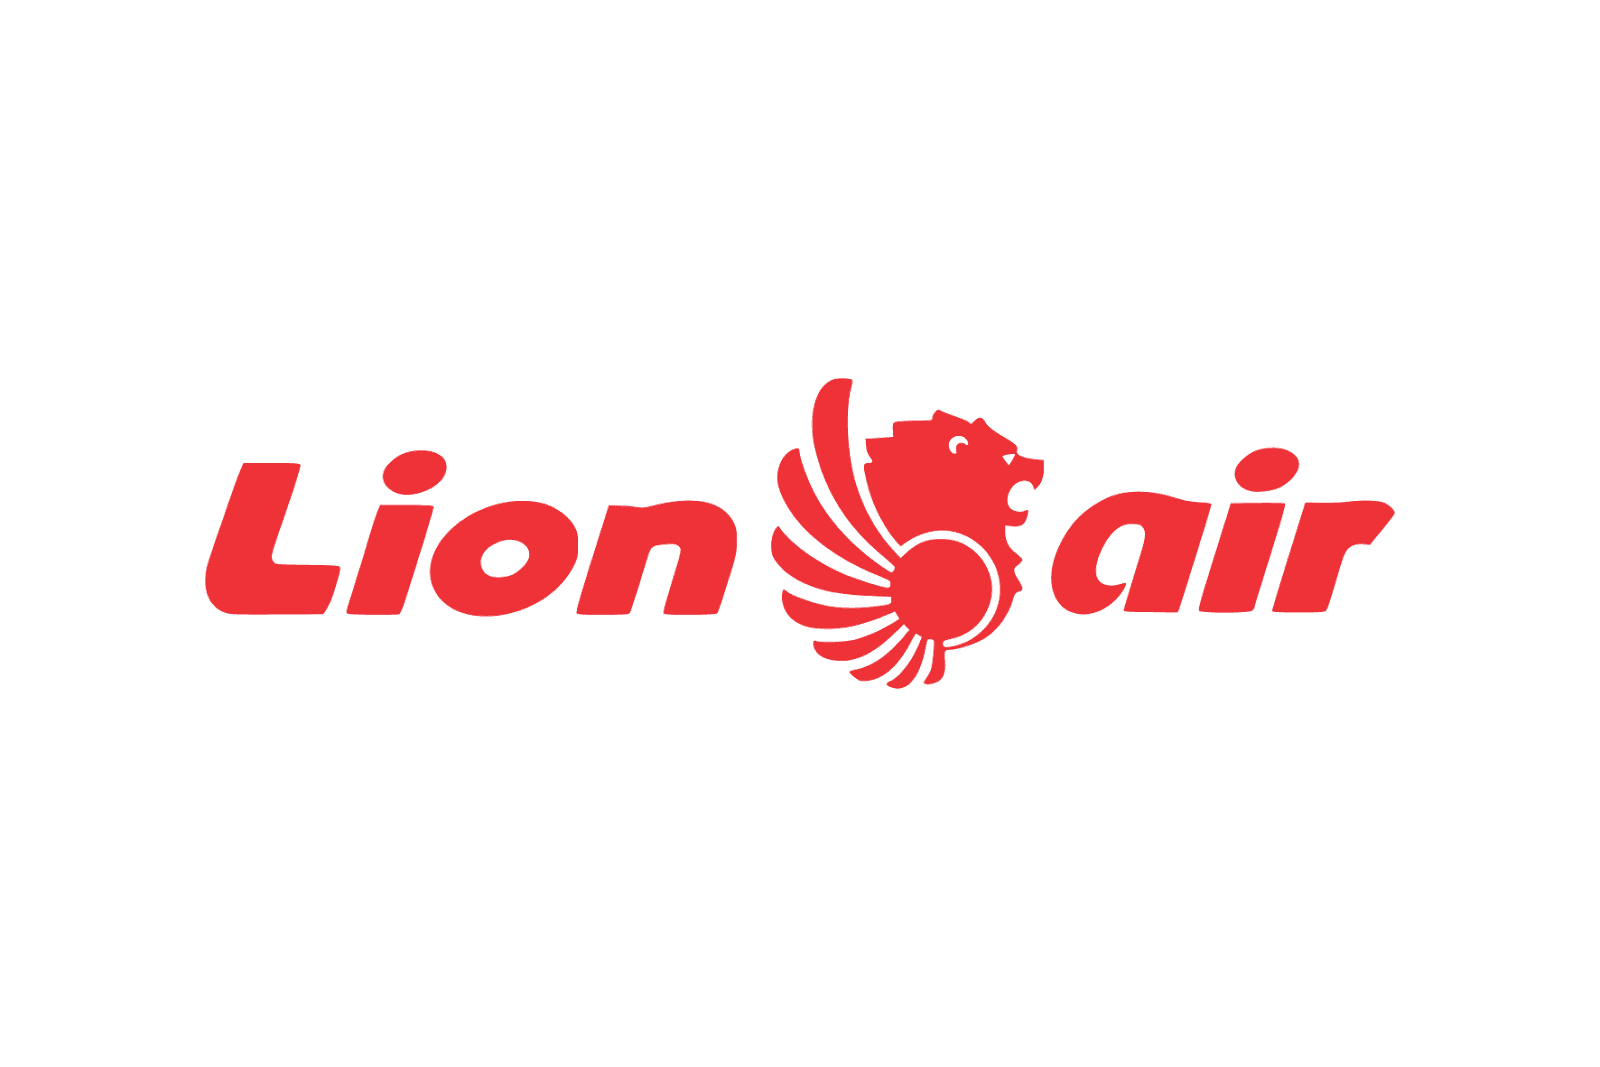 Lion Air Indonesia Kupon & Diskon 2019